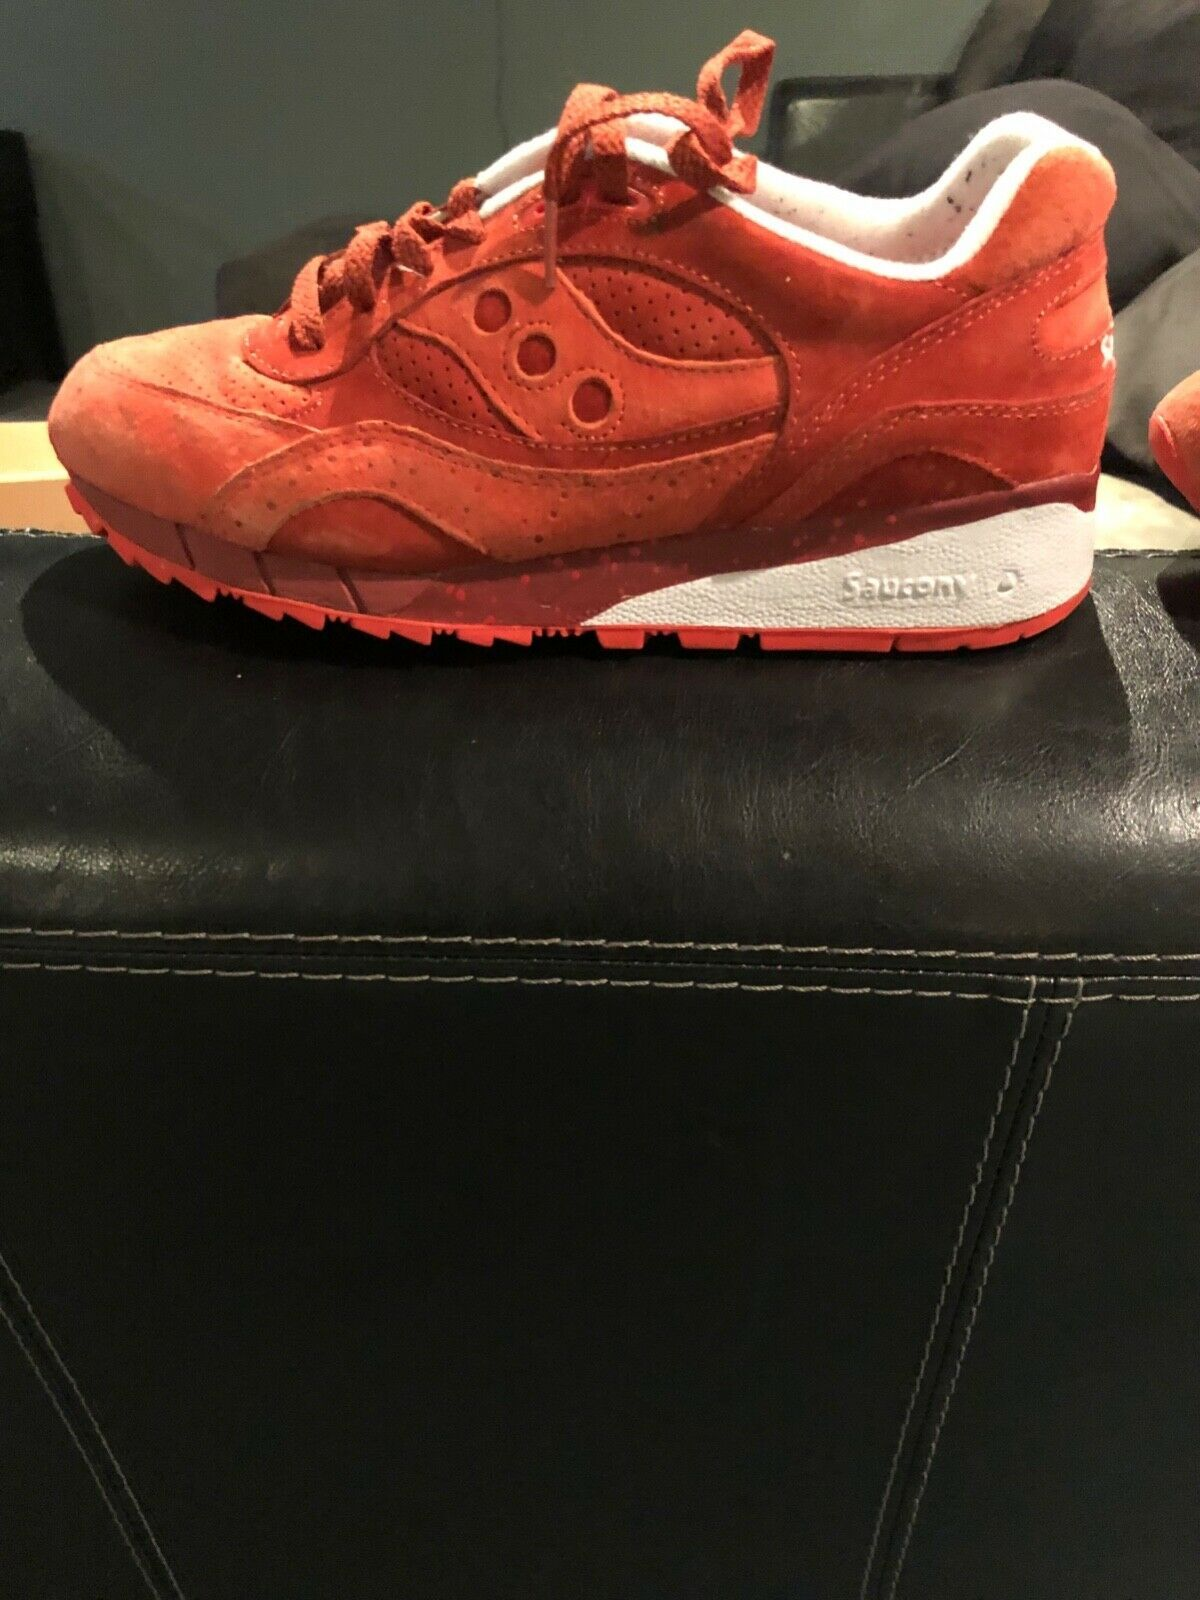 b0762714f1c5 men s saucony shadow 6000 red life on mars size 9.5